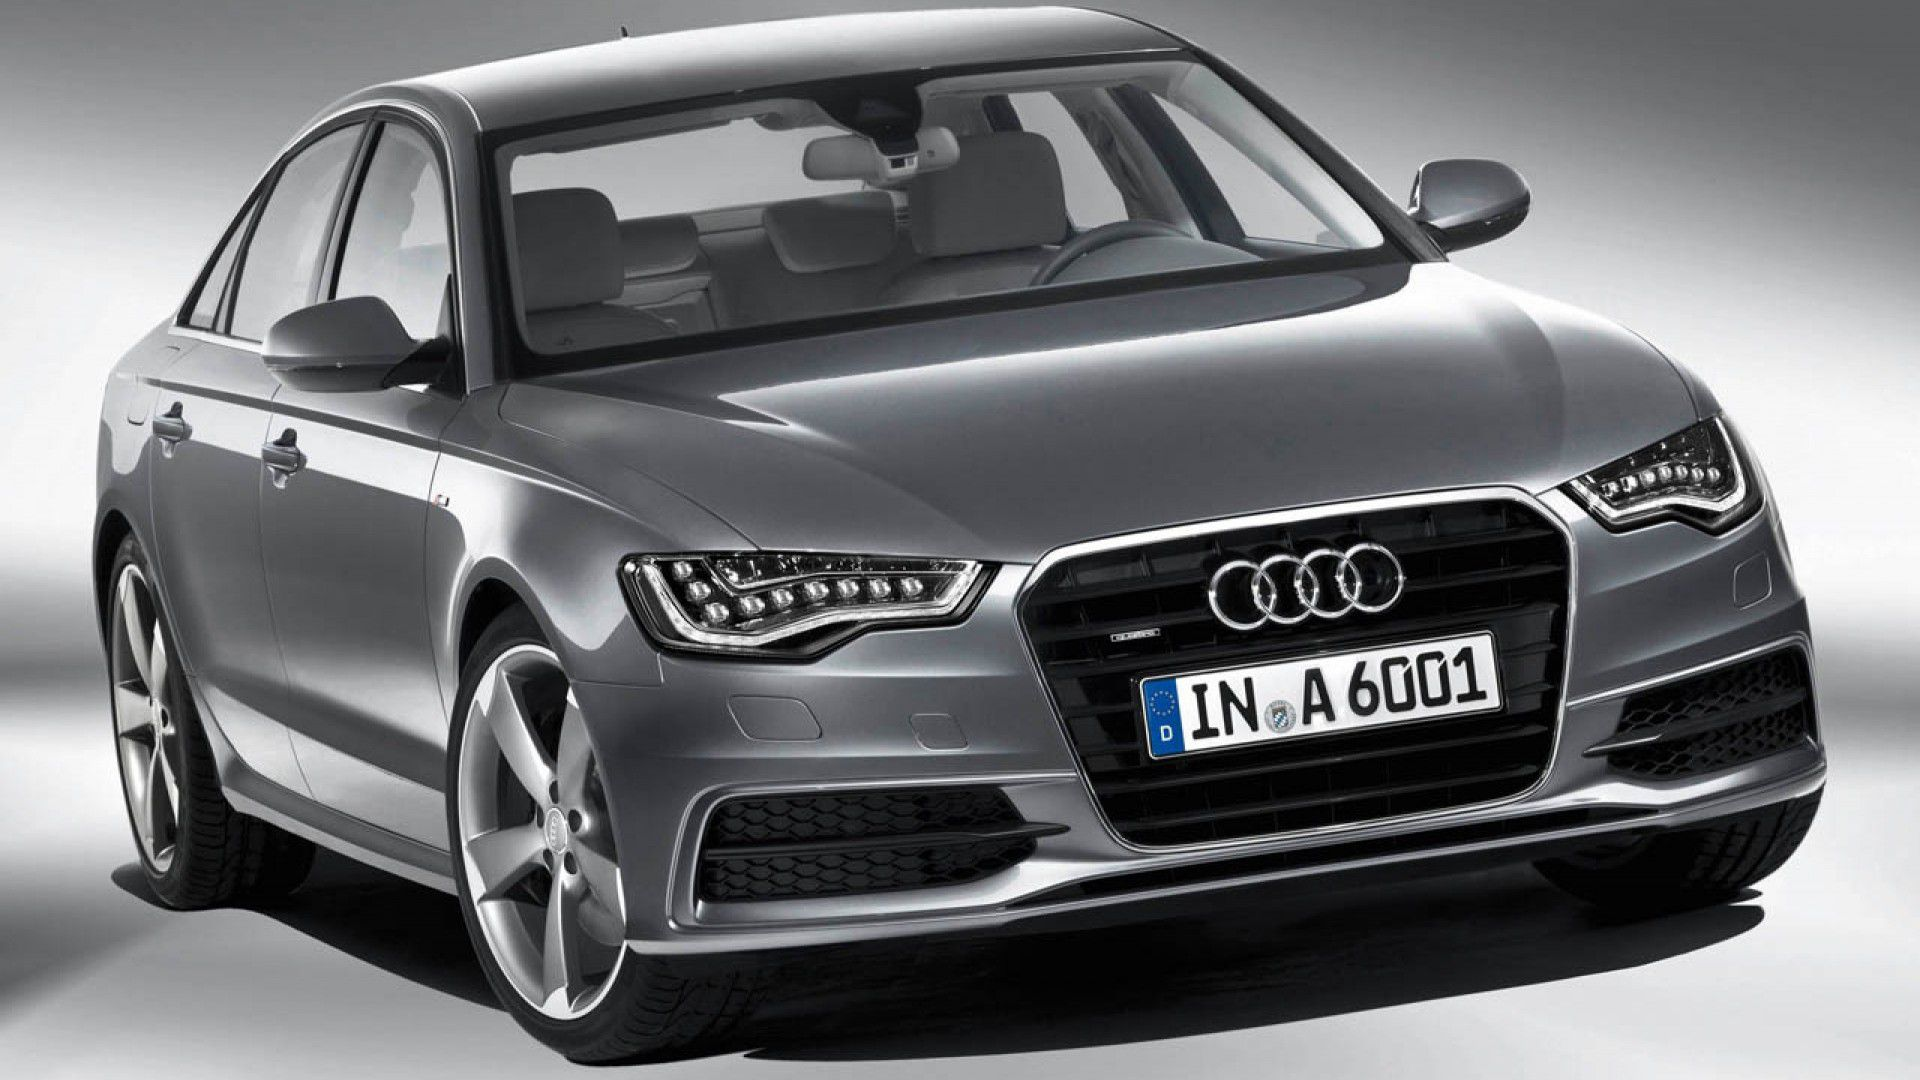 Audi A6 (2011 to Present)